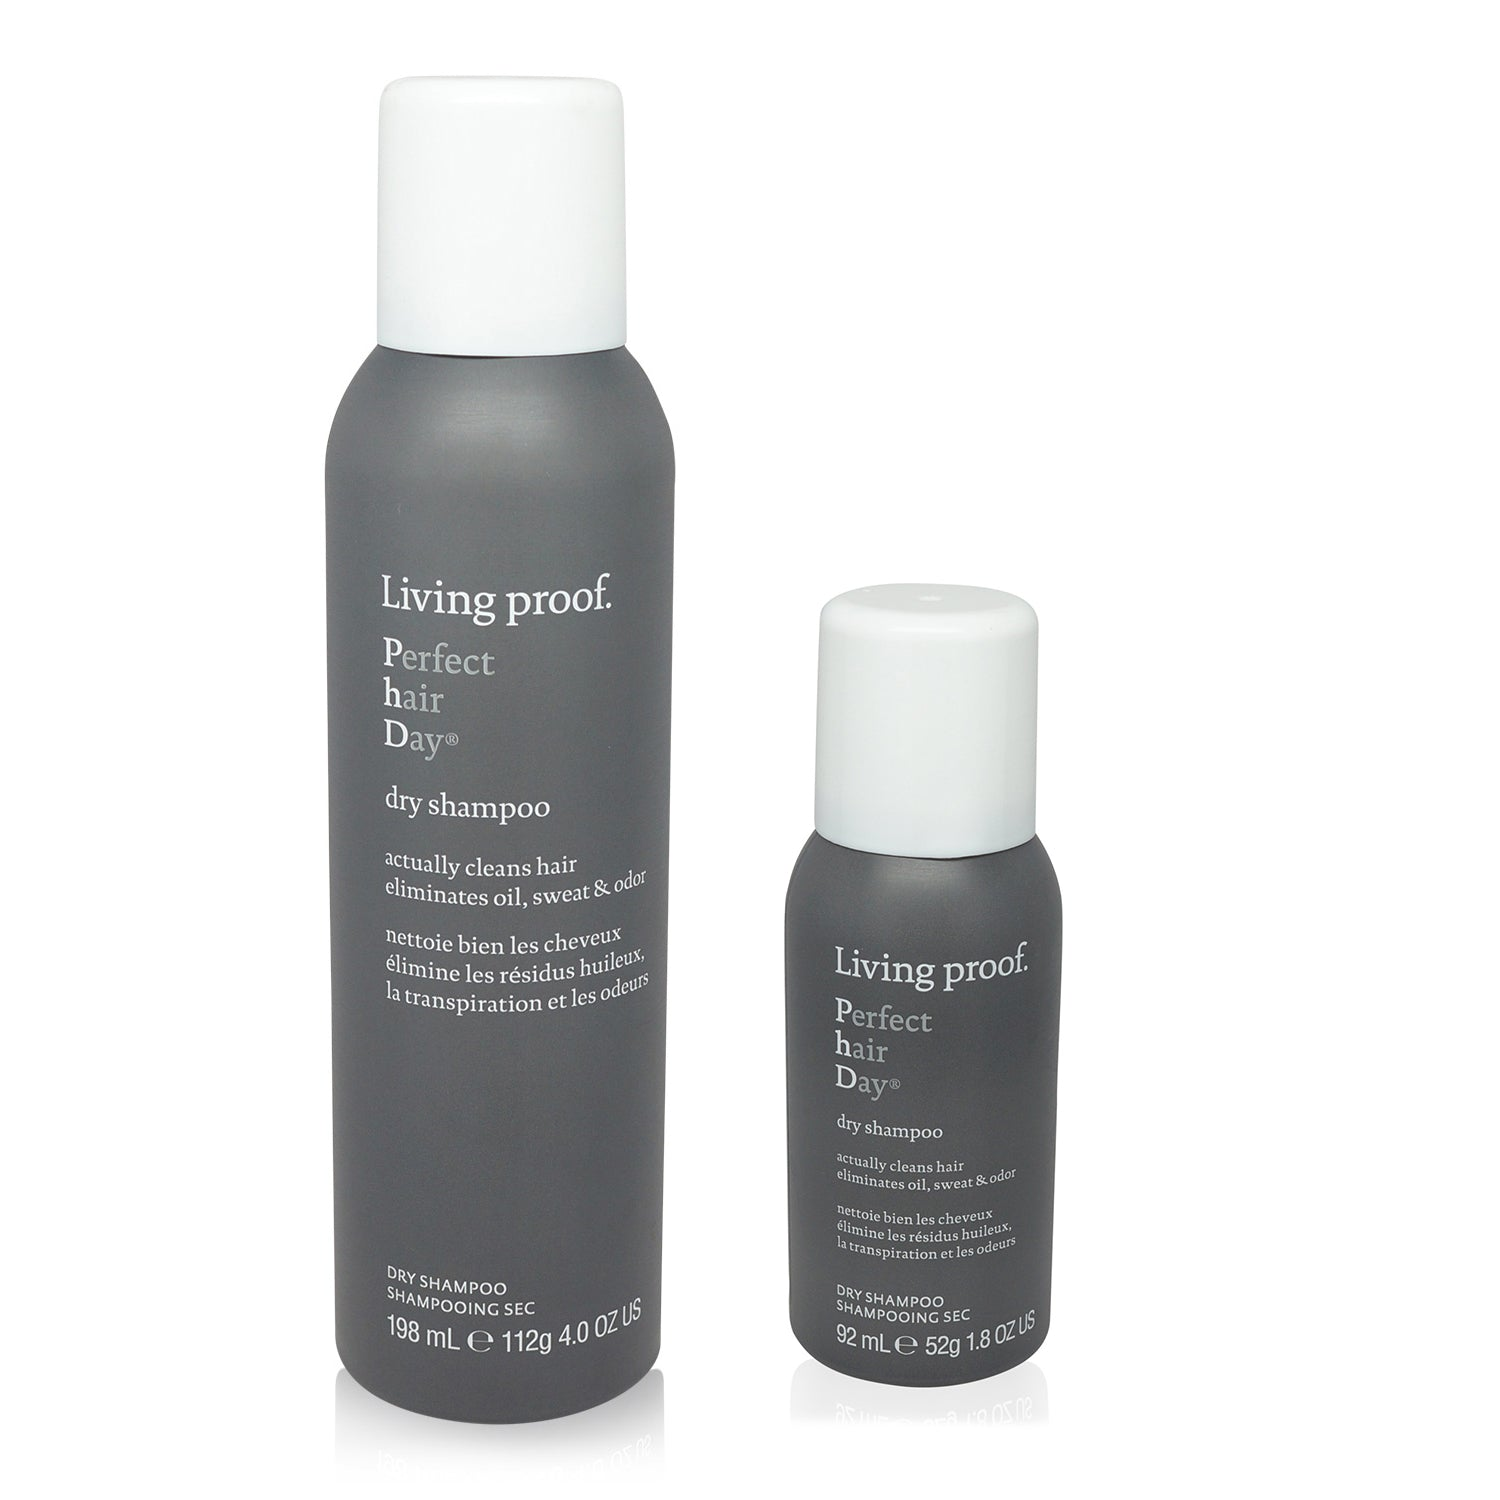 LIVING PROOF ~ PERFECT HAIR DAY (PHD) ~ DRY SHAMPOO 4 OZ & 1.8 OZ (AEROSOL) ~ COMBO PACK